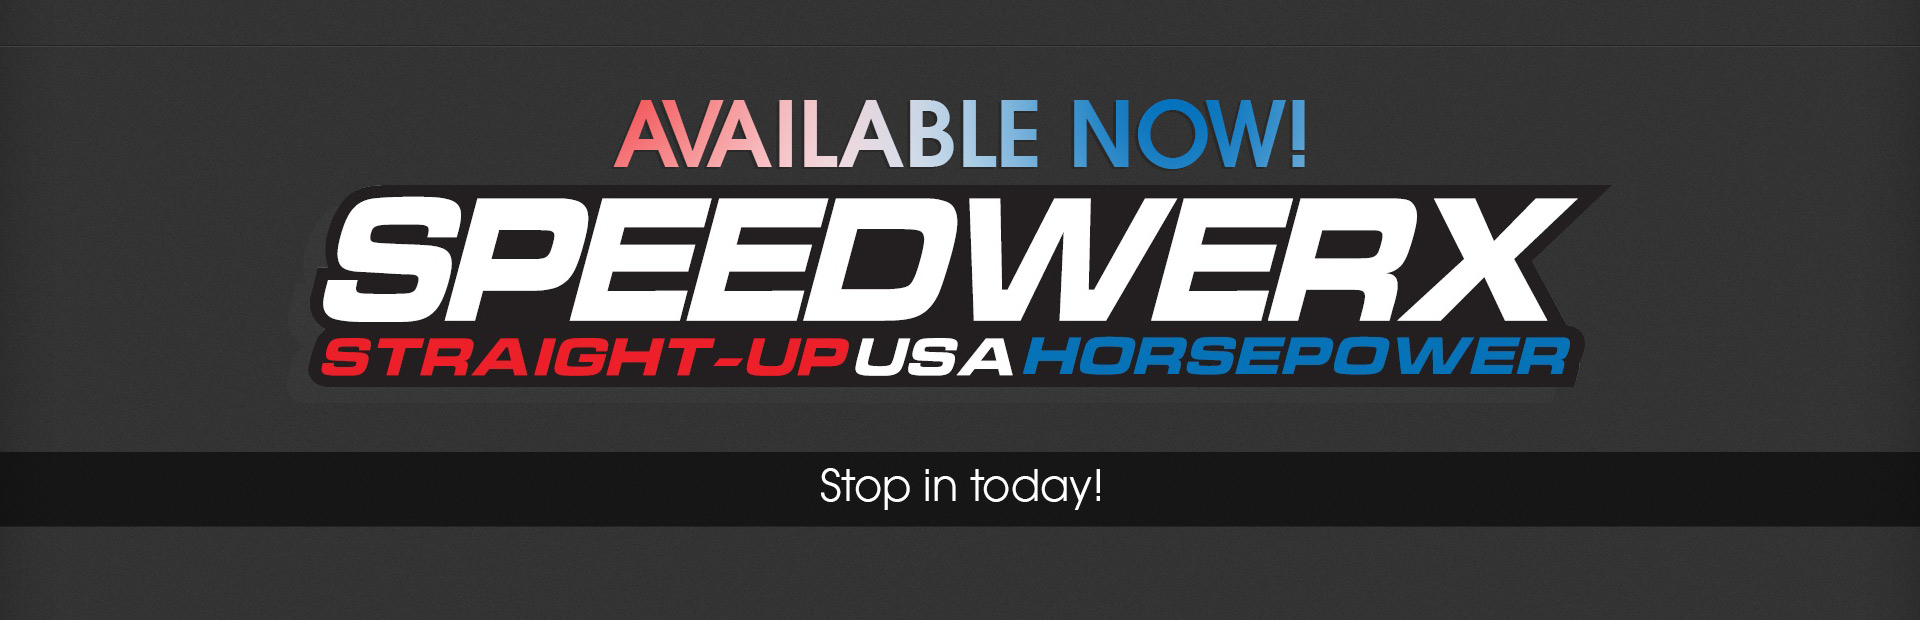 Speedwerx Available Now: Stop in today!